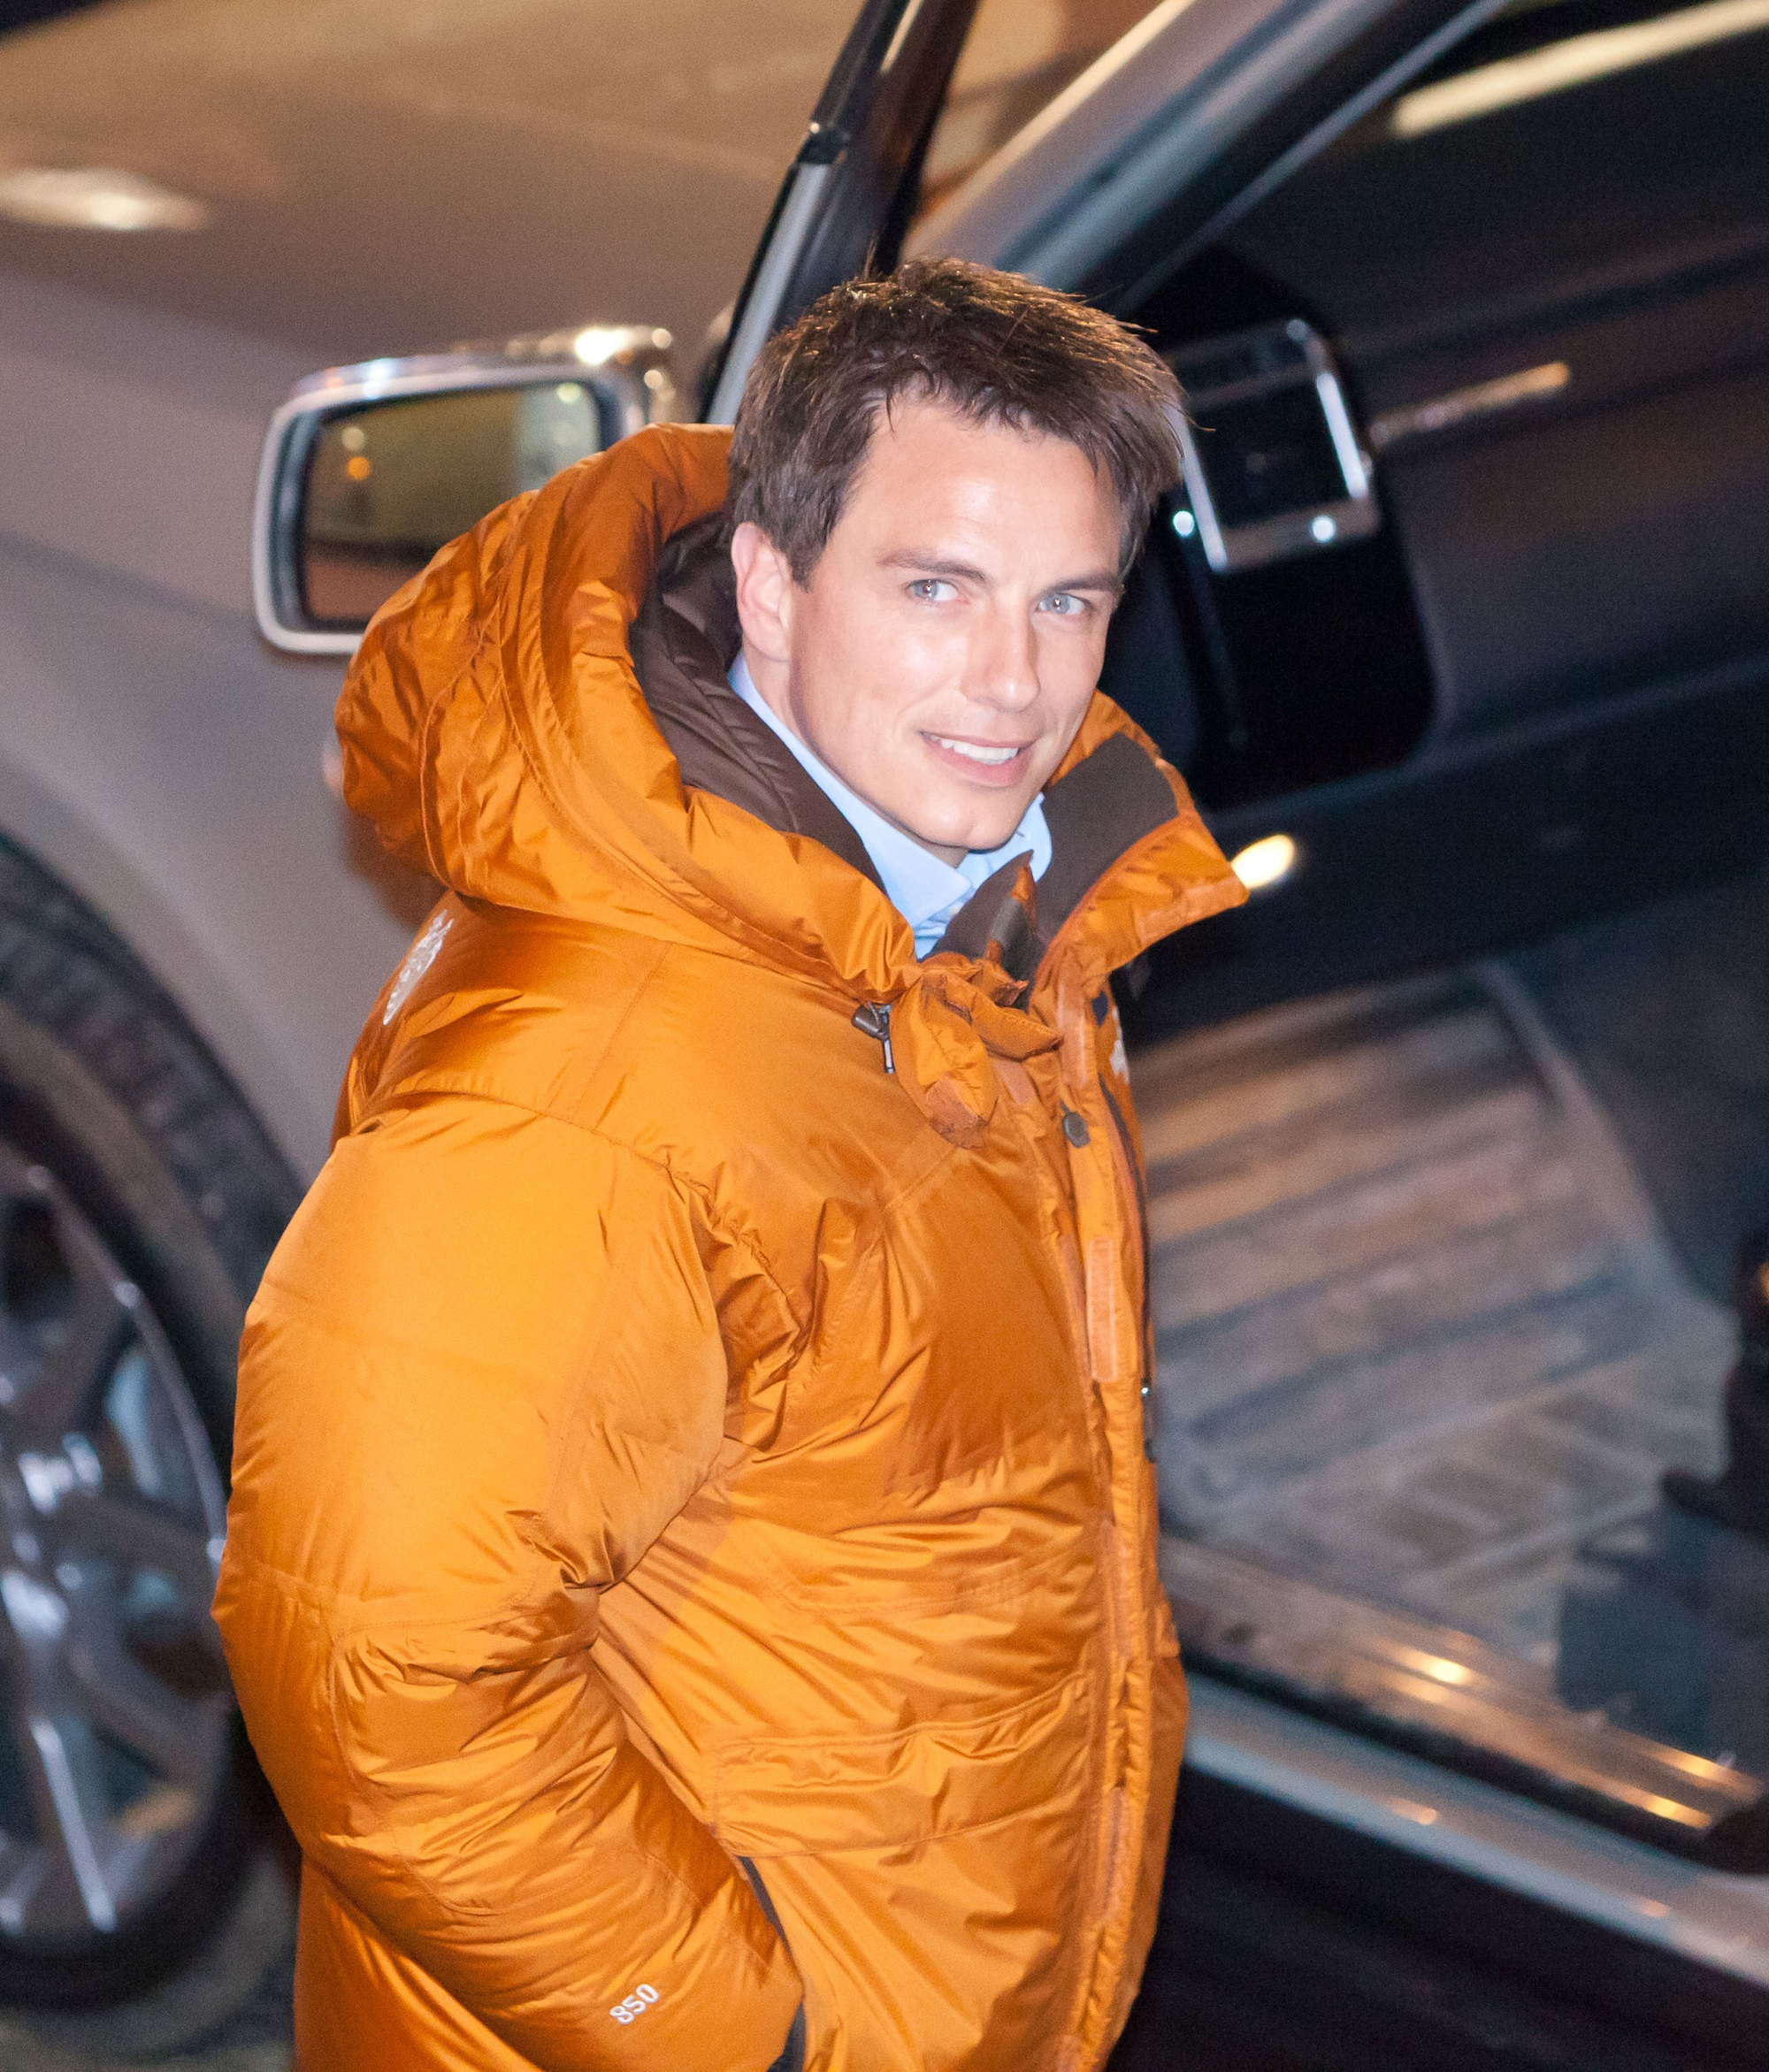 John Barrowman on the set of BBC science fiction drama 'Torchwood' Wales - 01.02.11 For the latest news join our mailing list. Photo Credit: Doug Williams/WENN.com